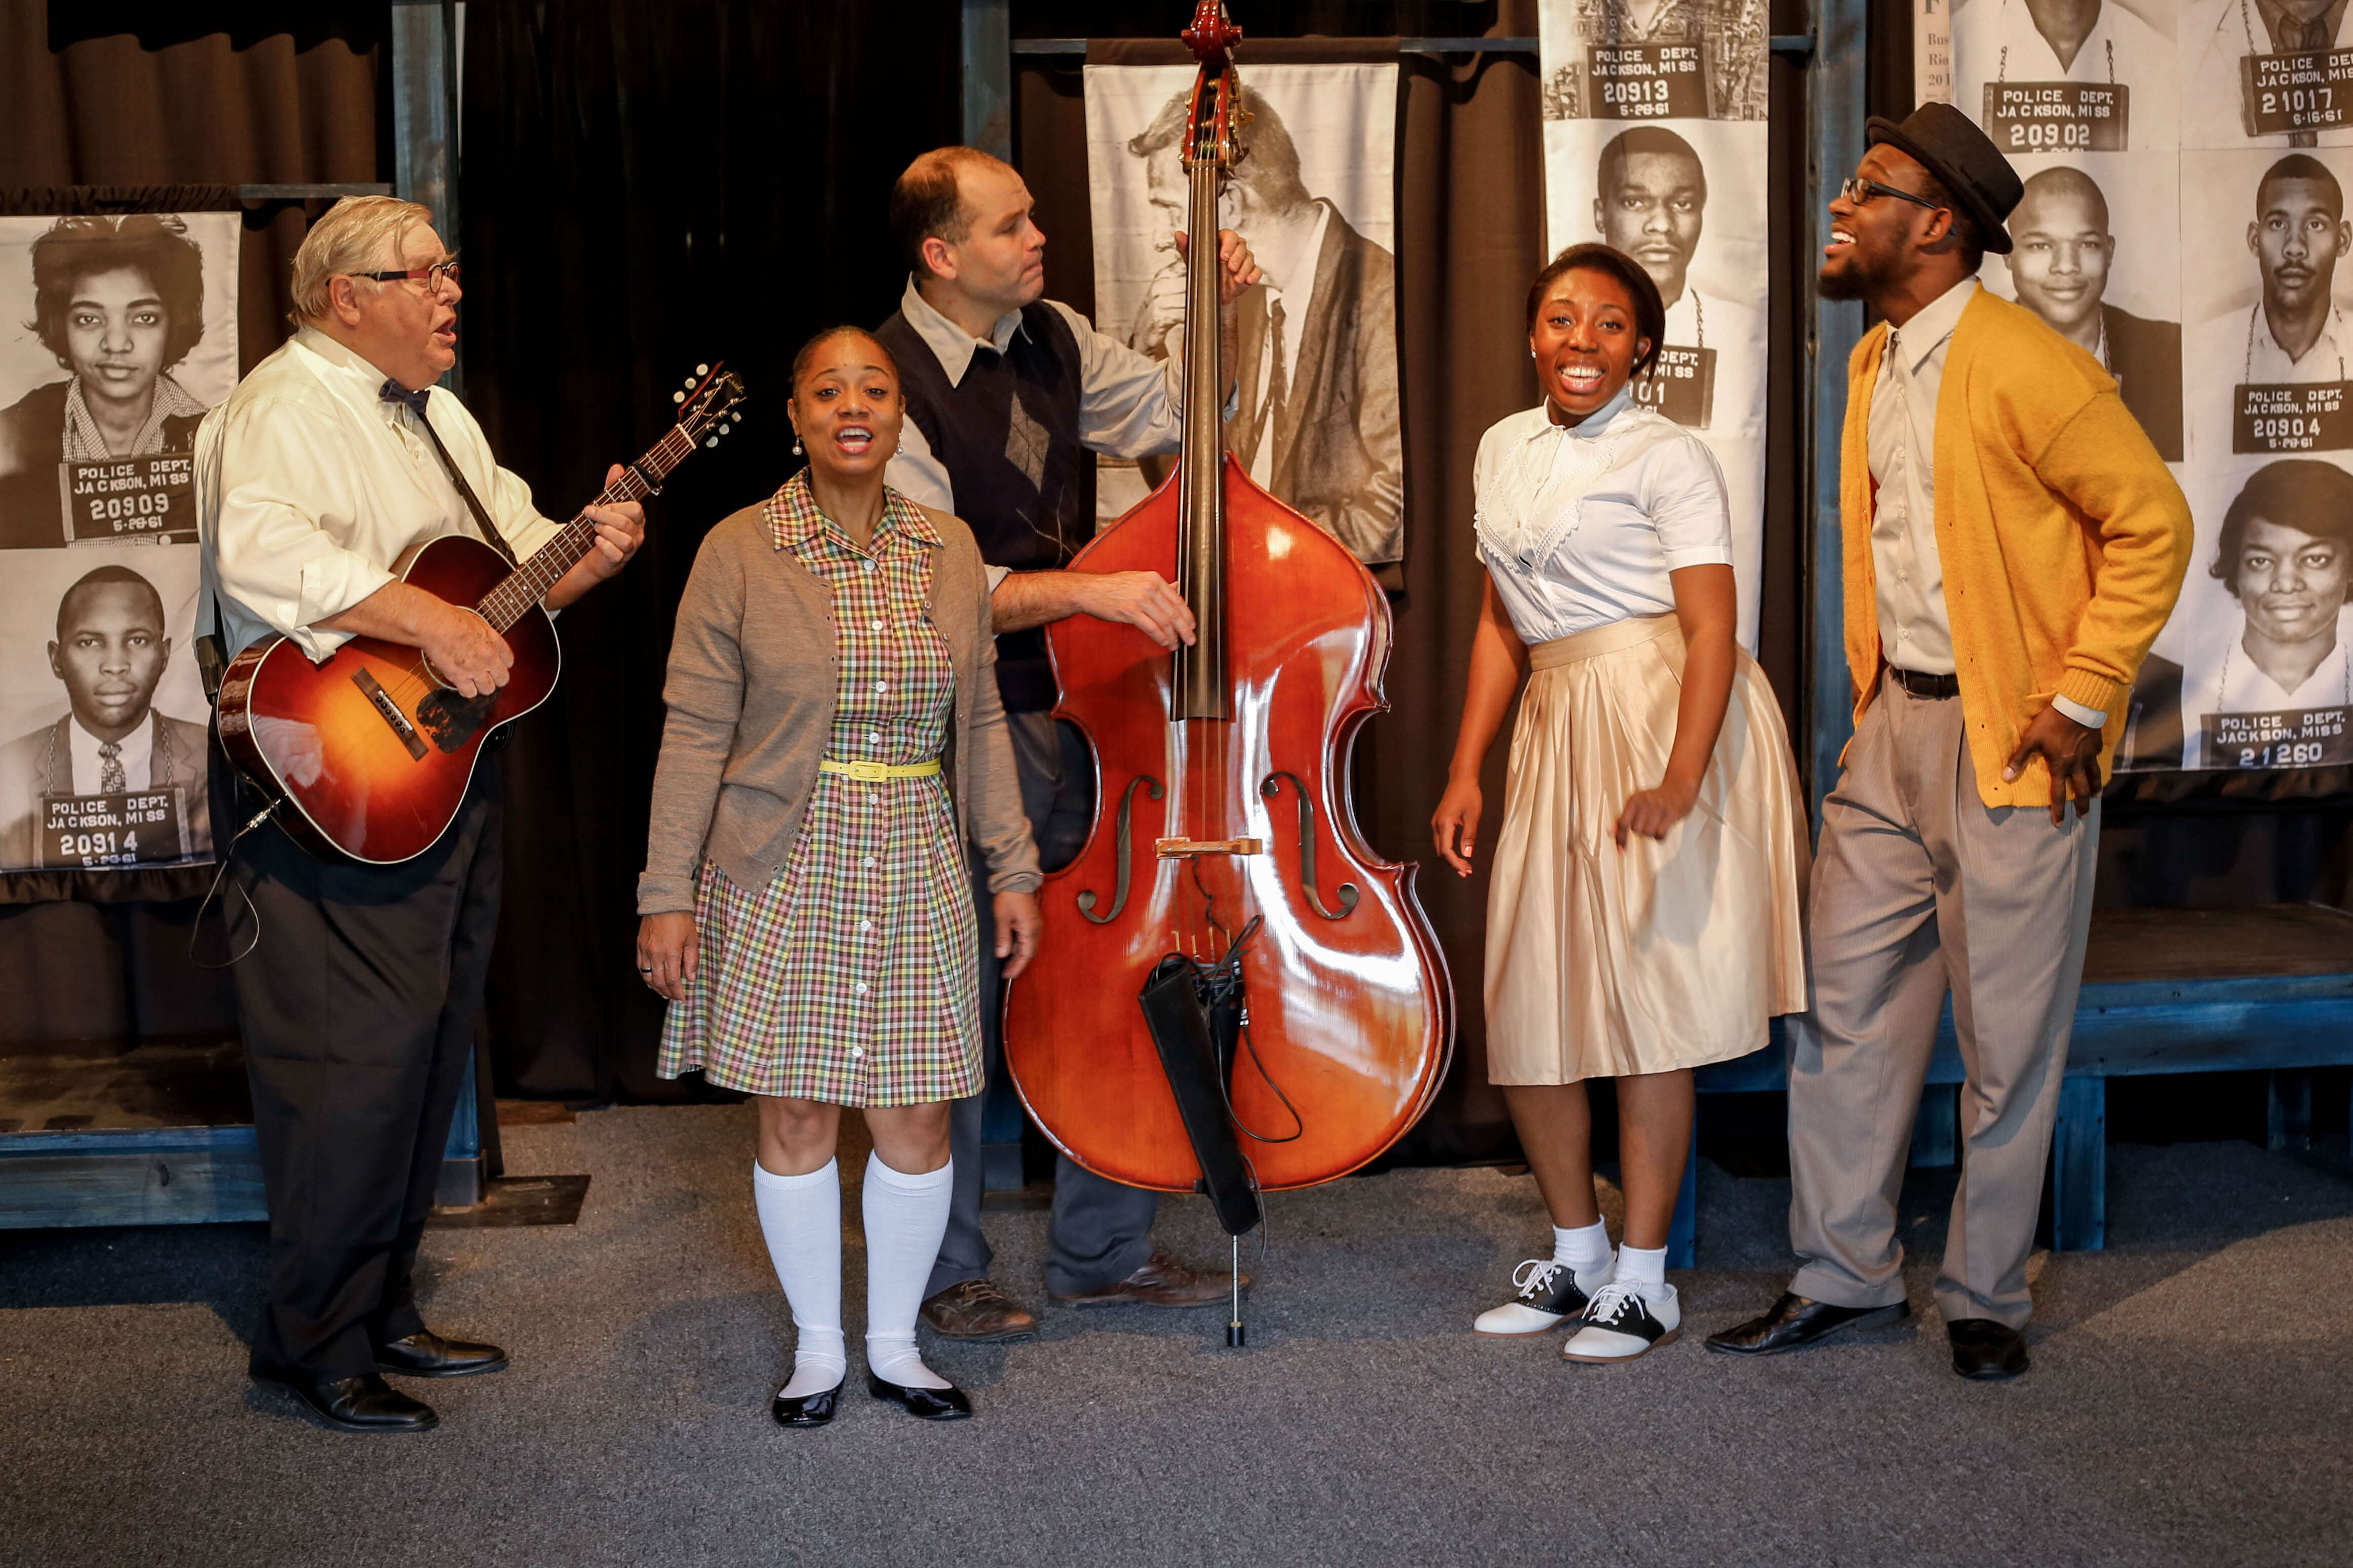 """""""Freedom Riders"""" family matinee explores one of the most critical chapters of the civil rights movement"""